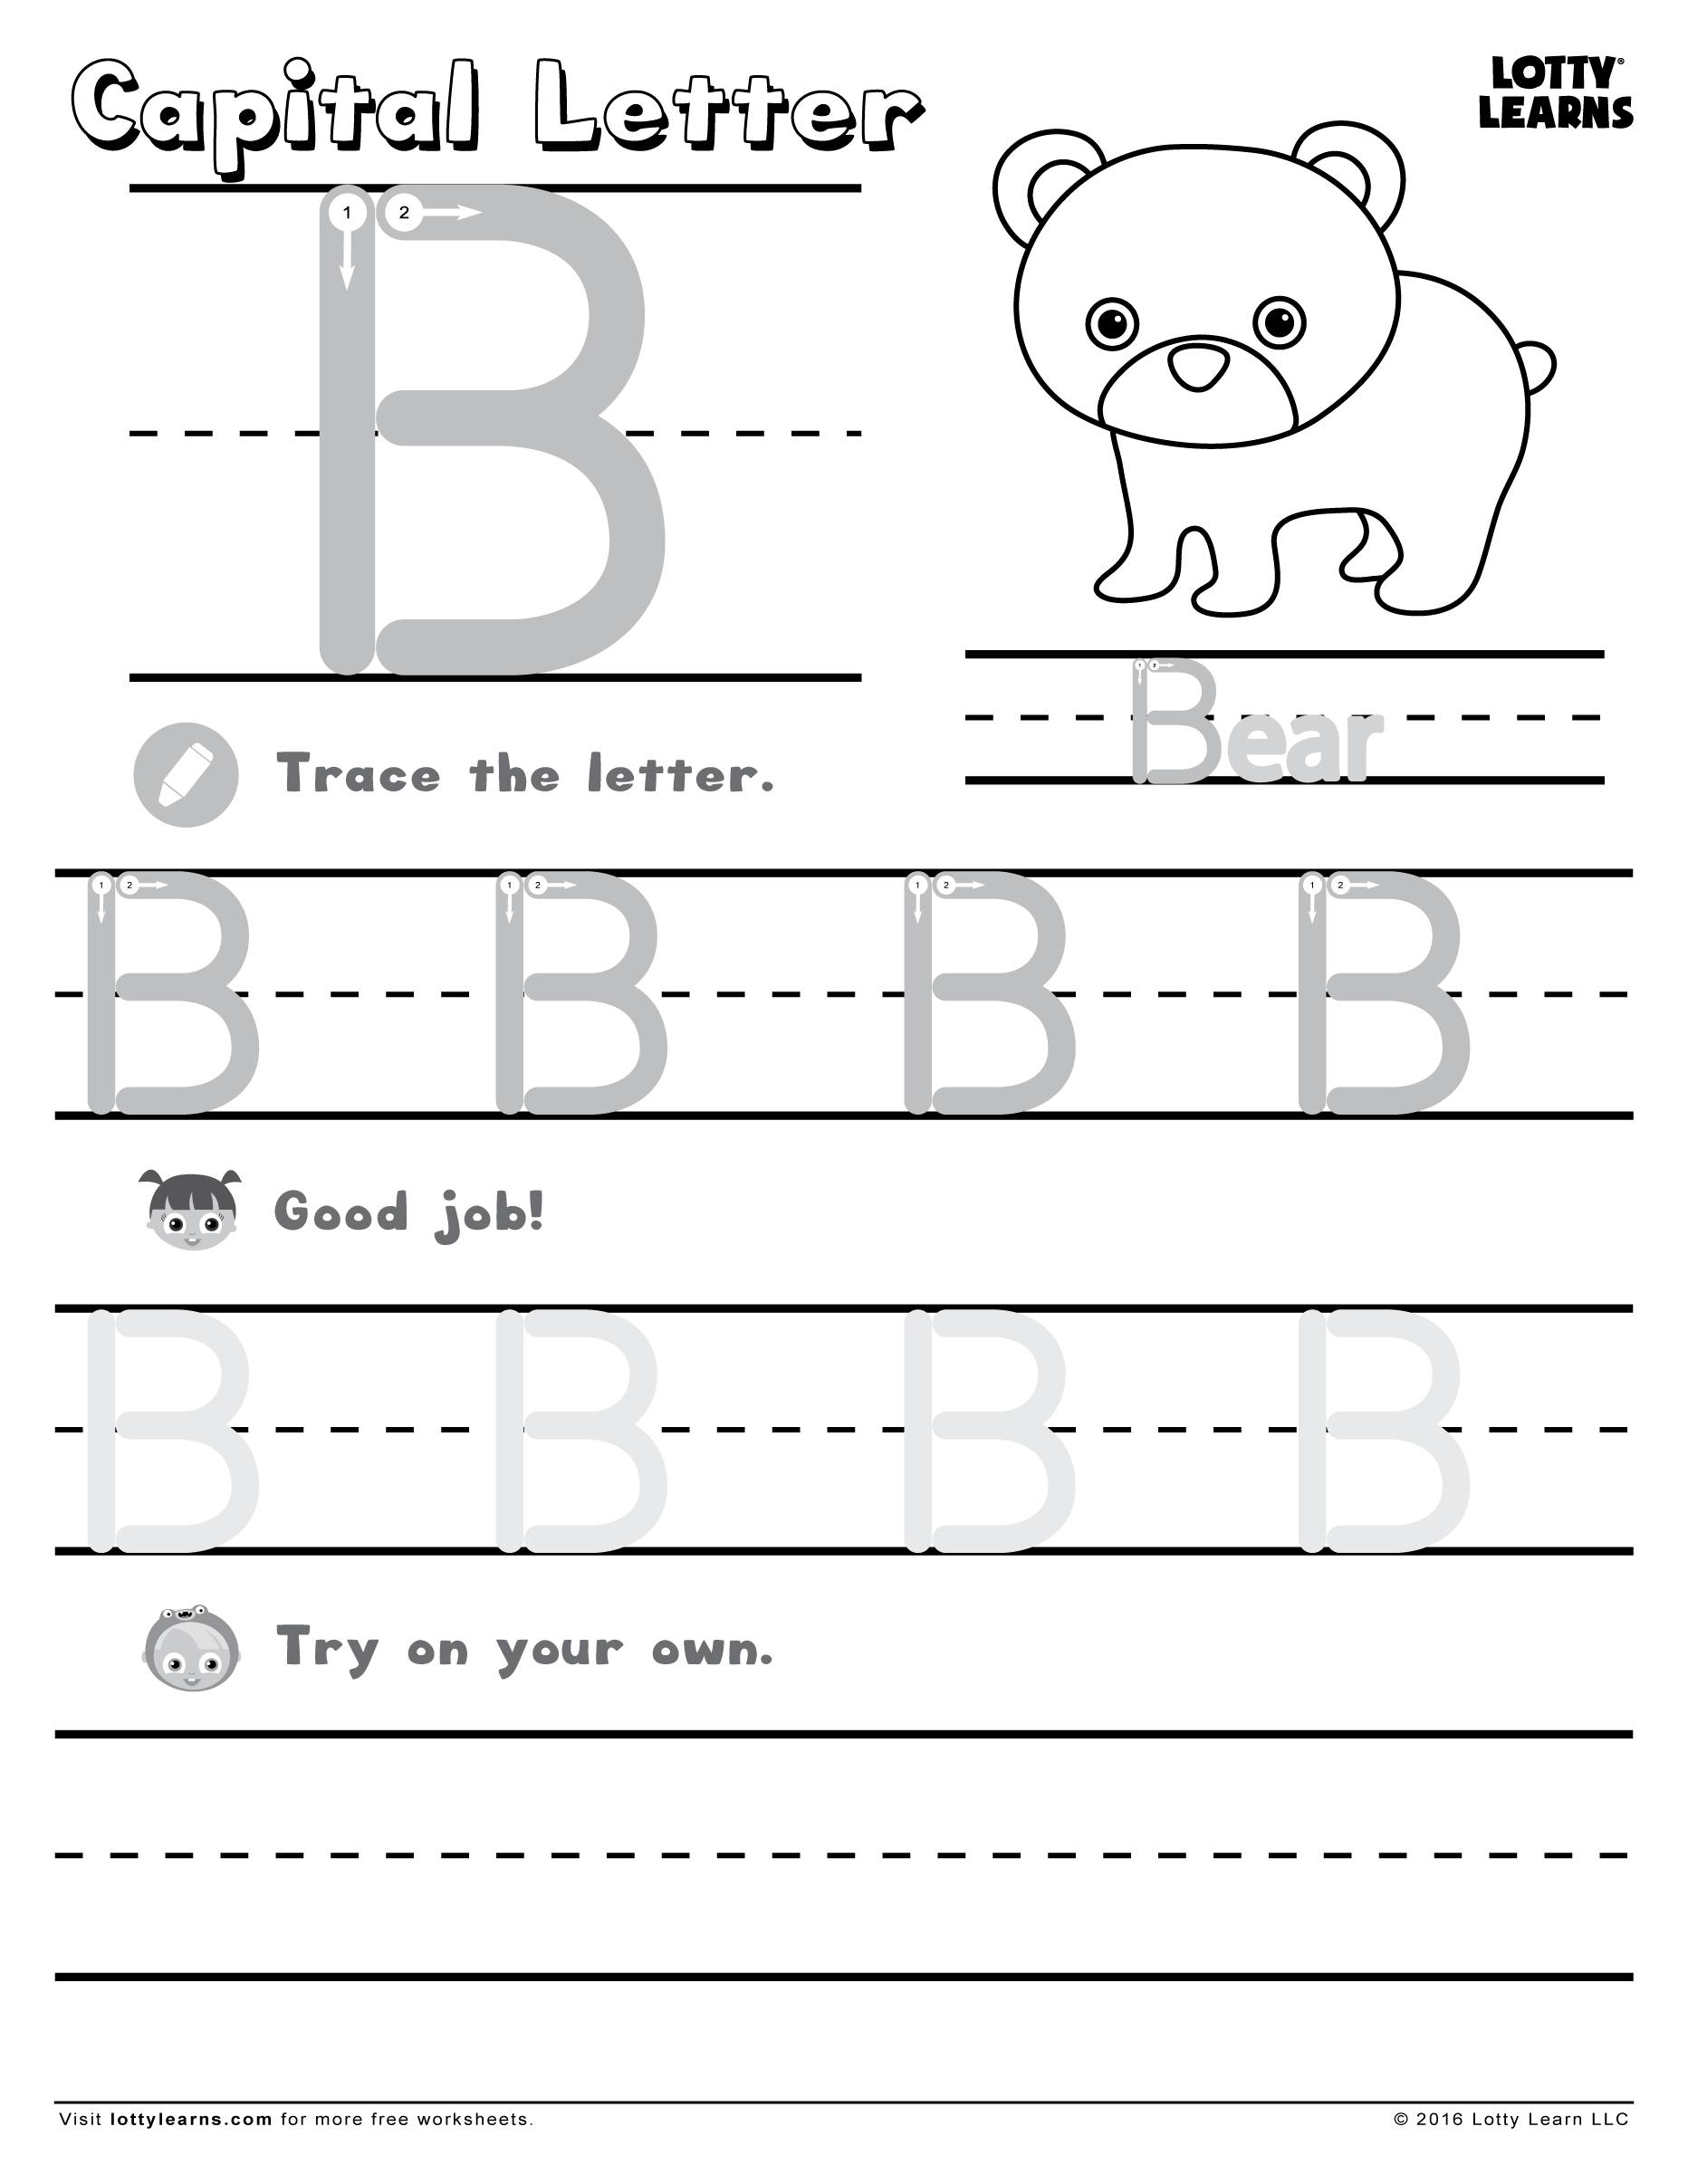 Capital Letter B | Lotty Learns | Letter B, Learning Letters pertaining to Letter B Worksheets For Kindergarten